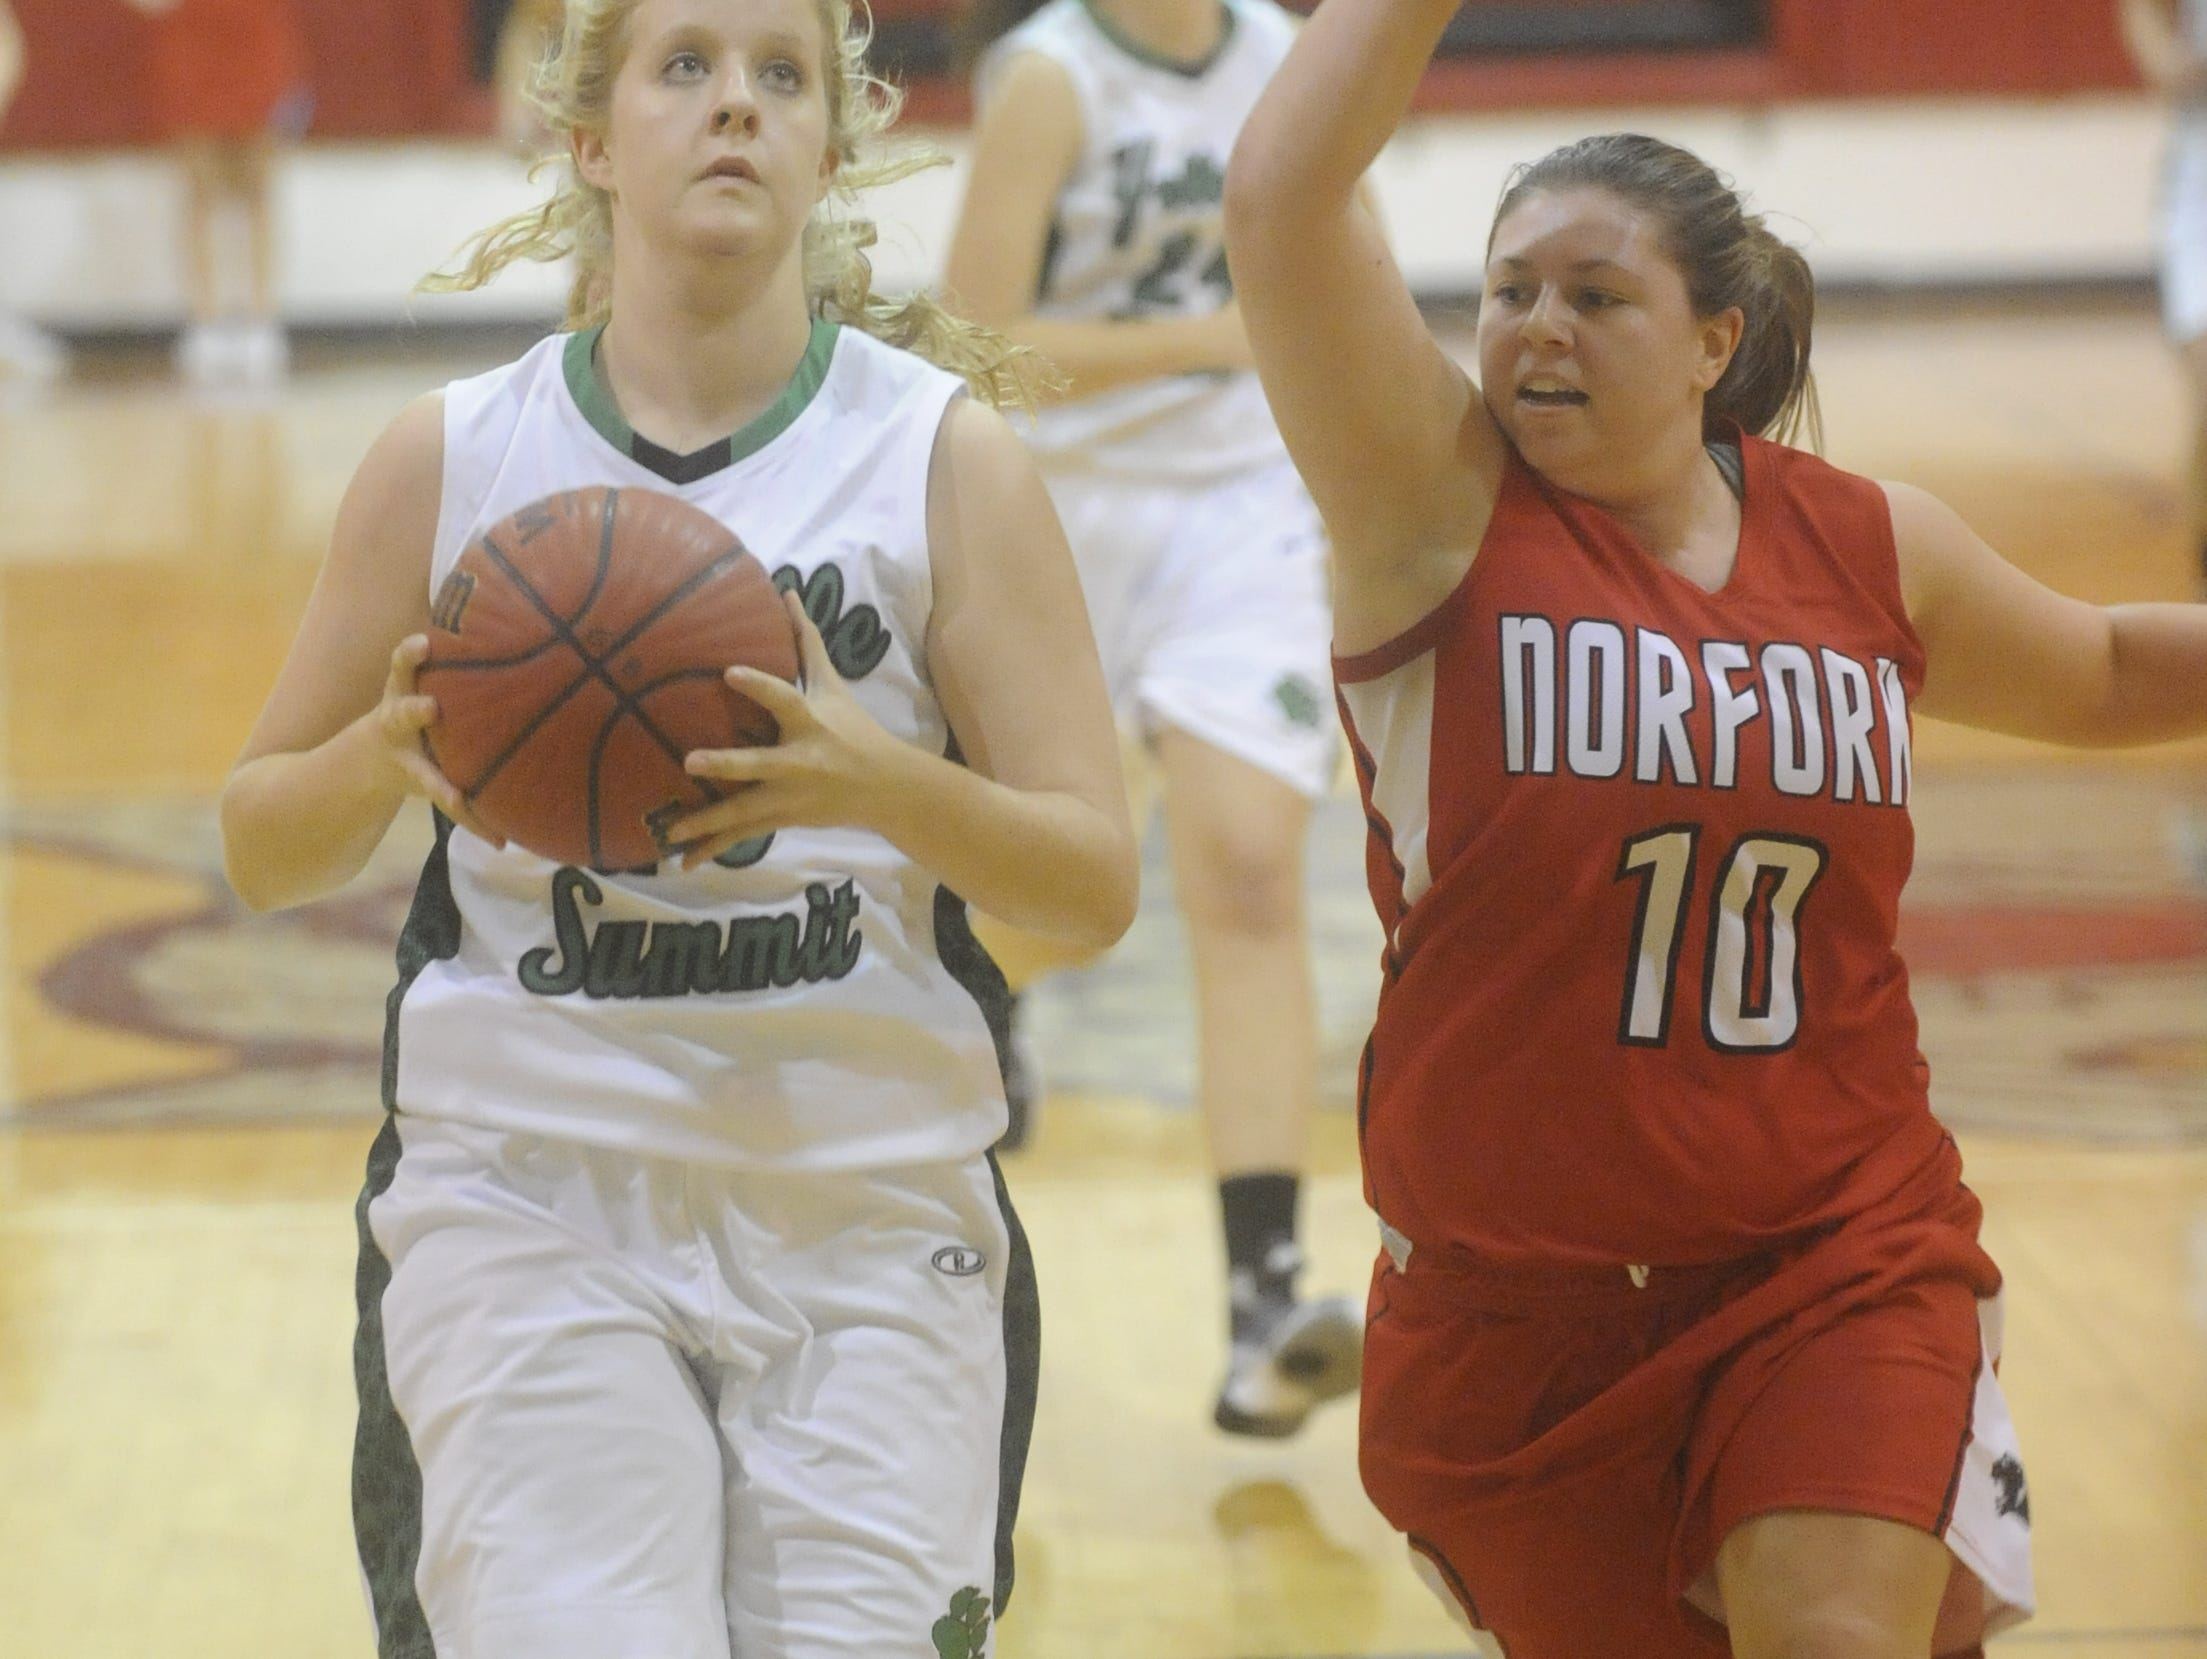 Yellville-Summit's Kyli Duffy, left, goes up for a layup while defended by Norfork's Abbie Belding on Wednesday night.